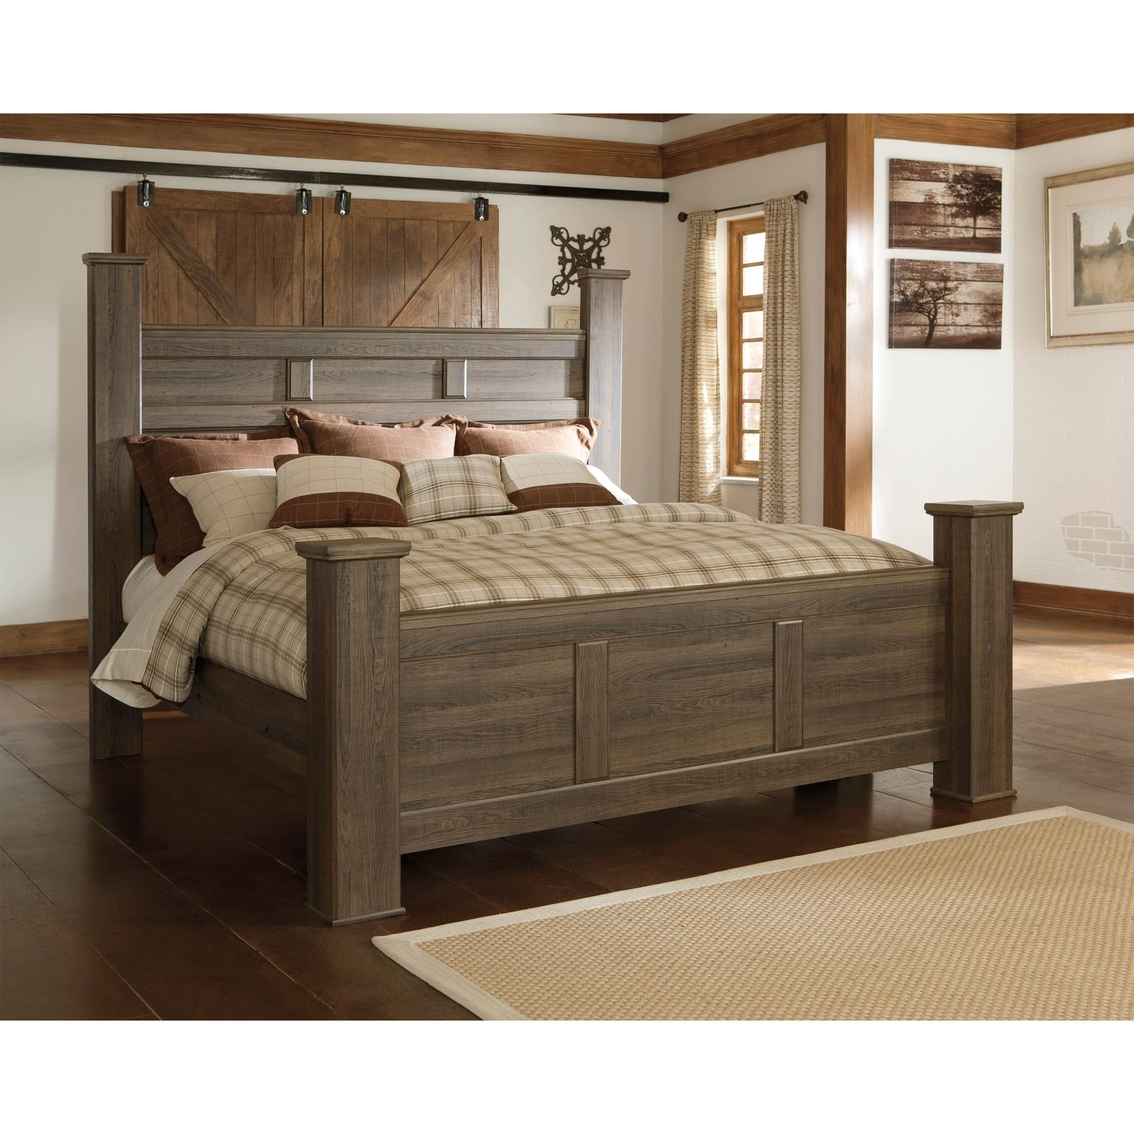 King Bed Frame Design Signature Design By Ashley Juararo King Poster Bed Beds Home